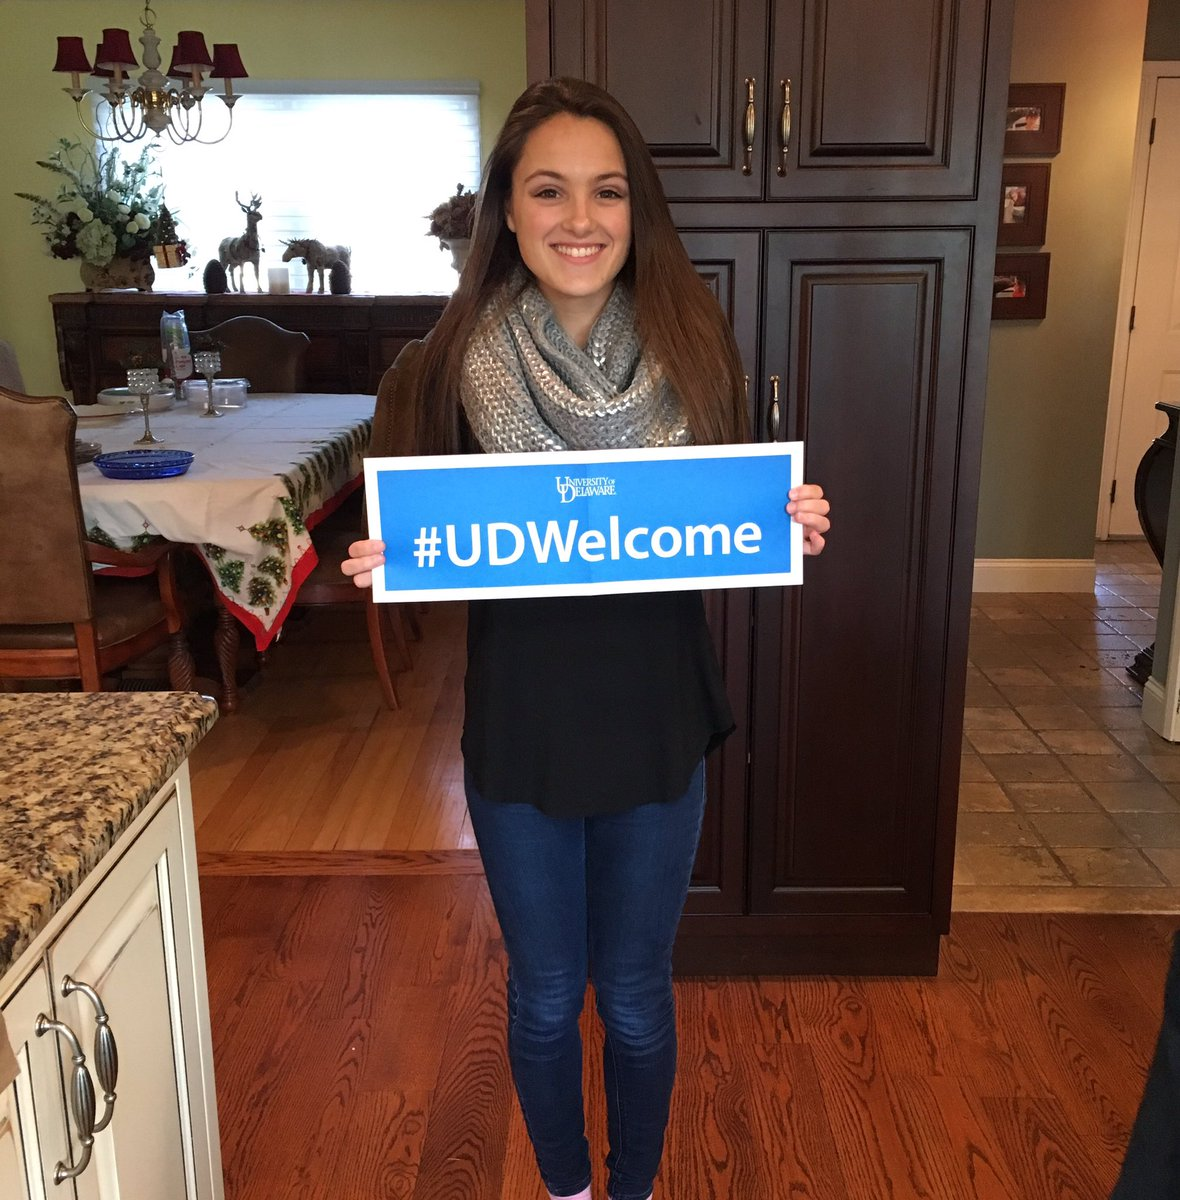 the best christmas present ever! 😊 #UDWelcome https://t.co/dtigeyqZYj